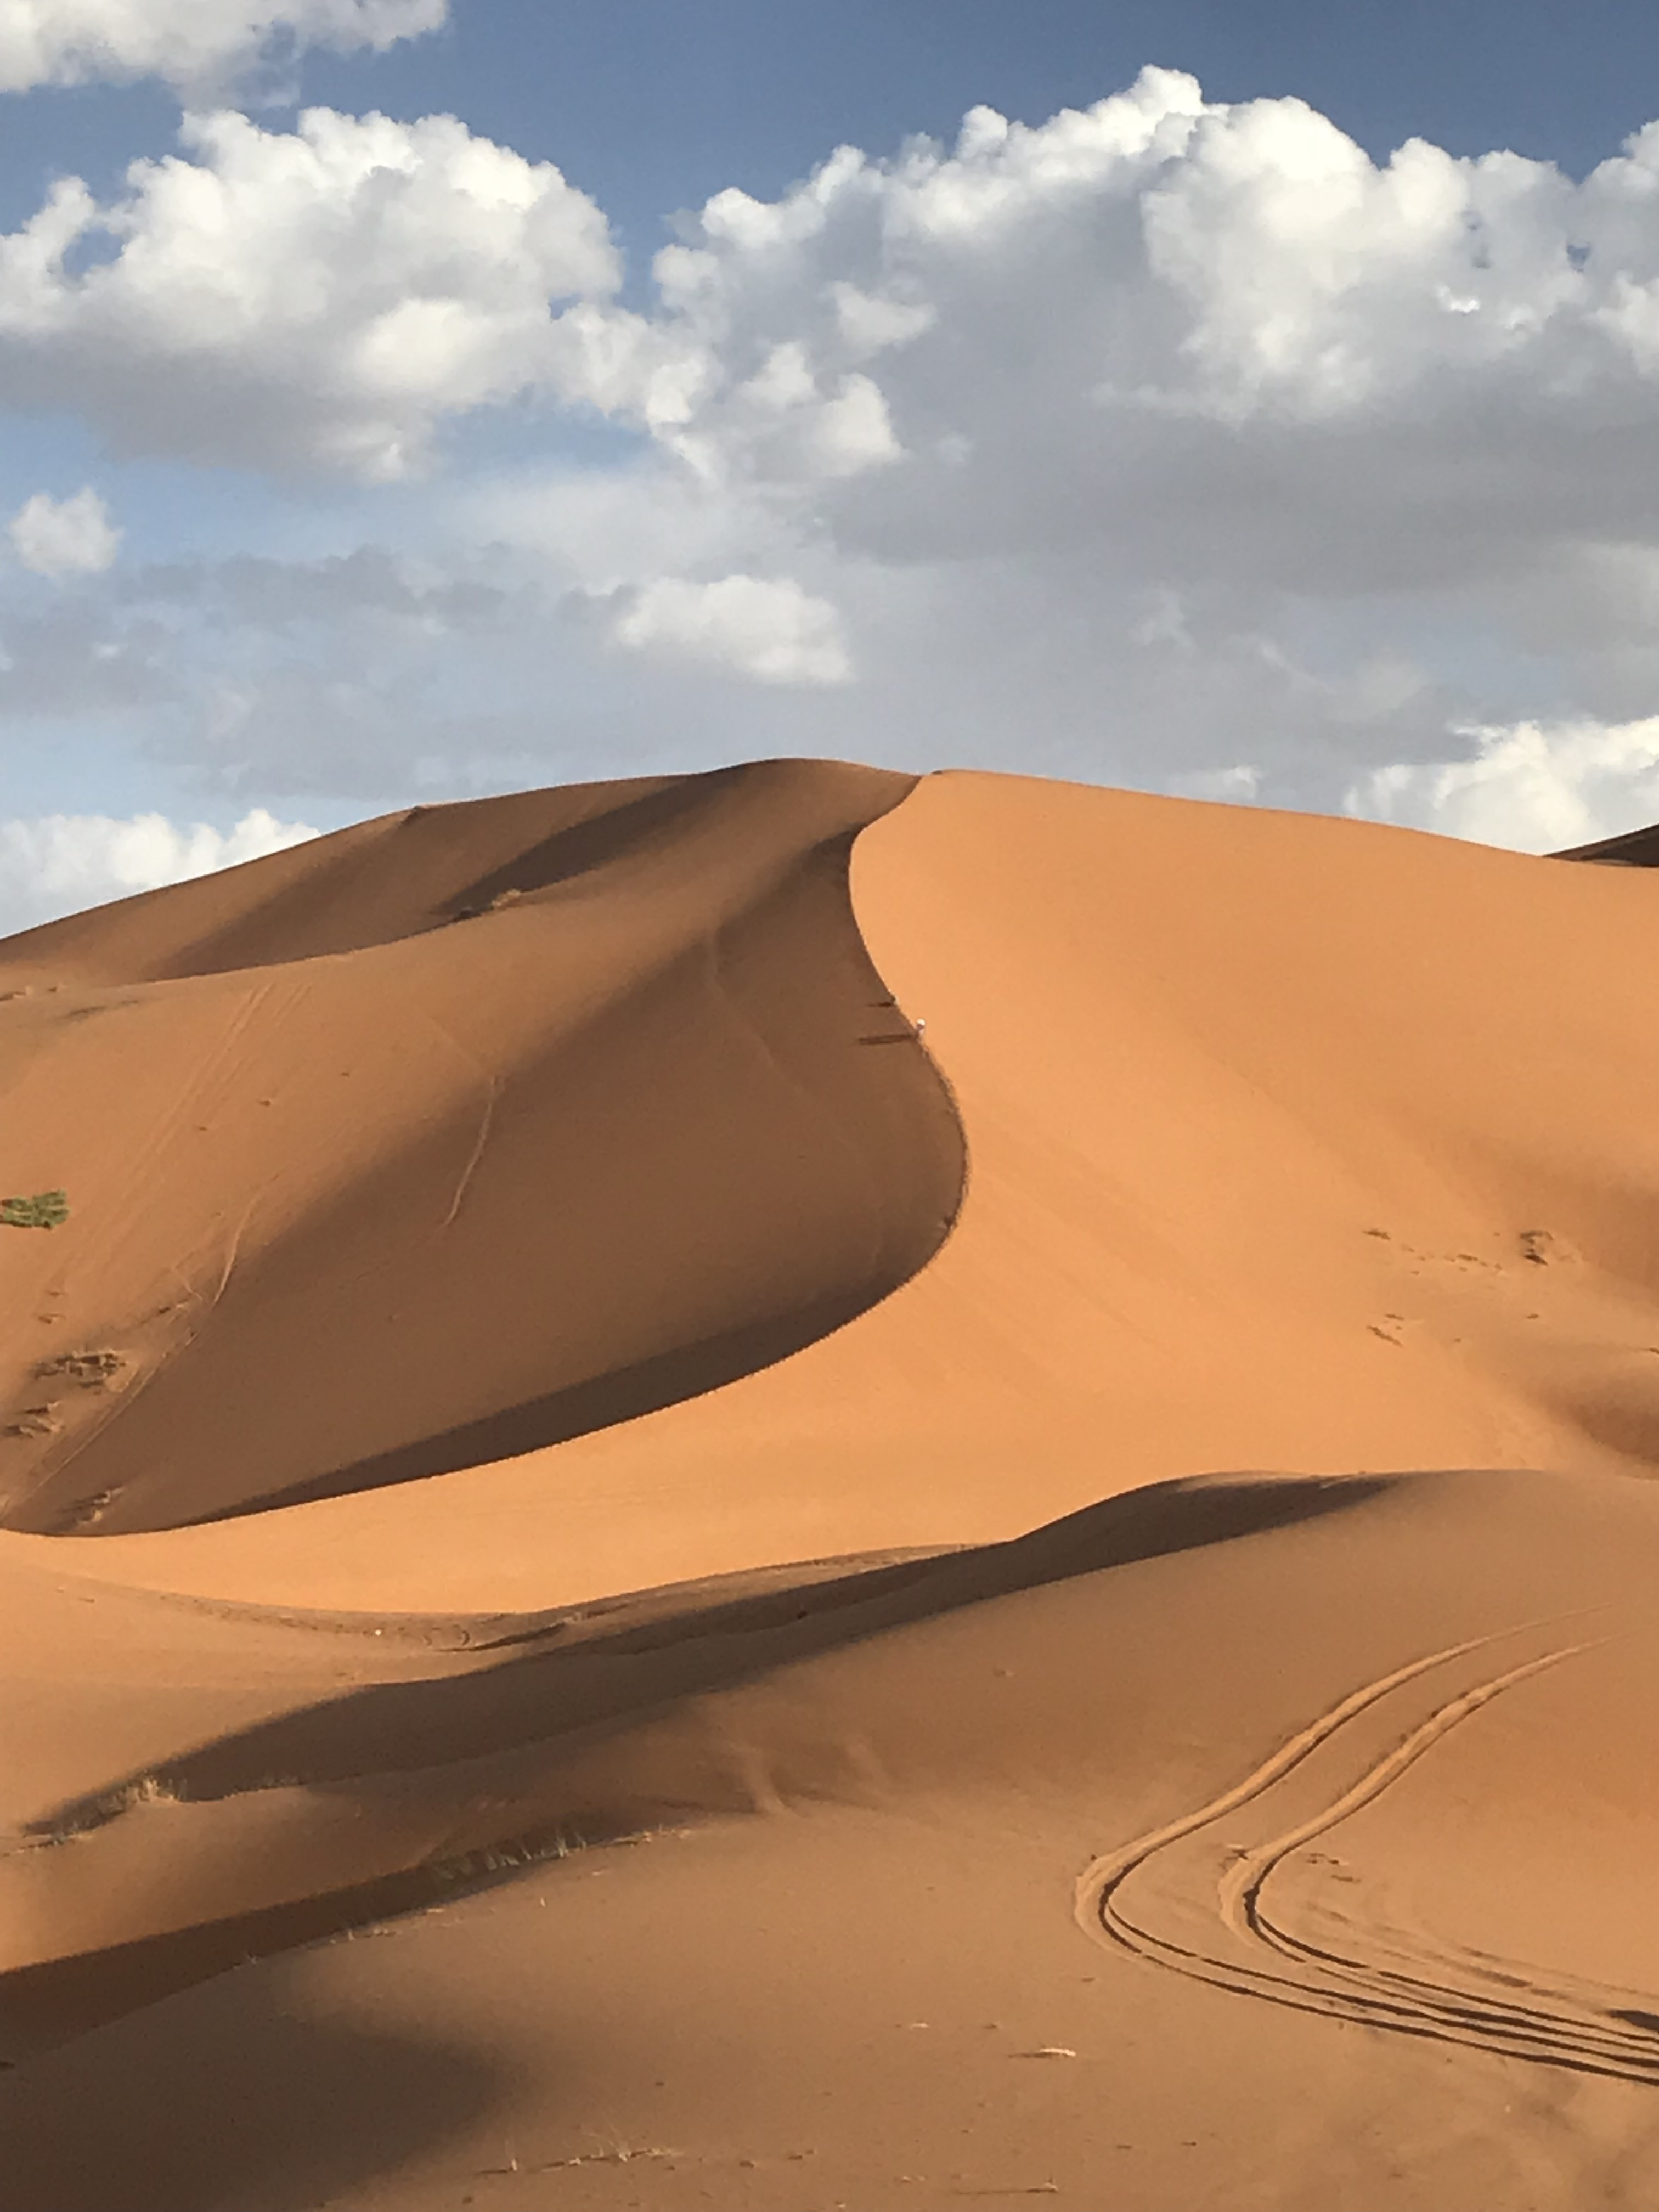 desert center single girls Top places to visit in dubai, united arab emirates: see tripadvisor's 4,23,690 traveller reviews and photos of dubai attractions.